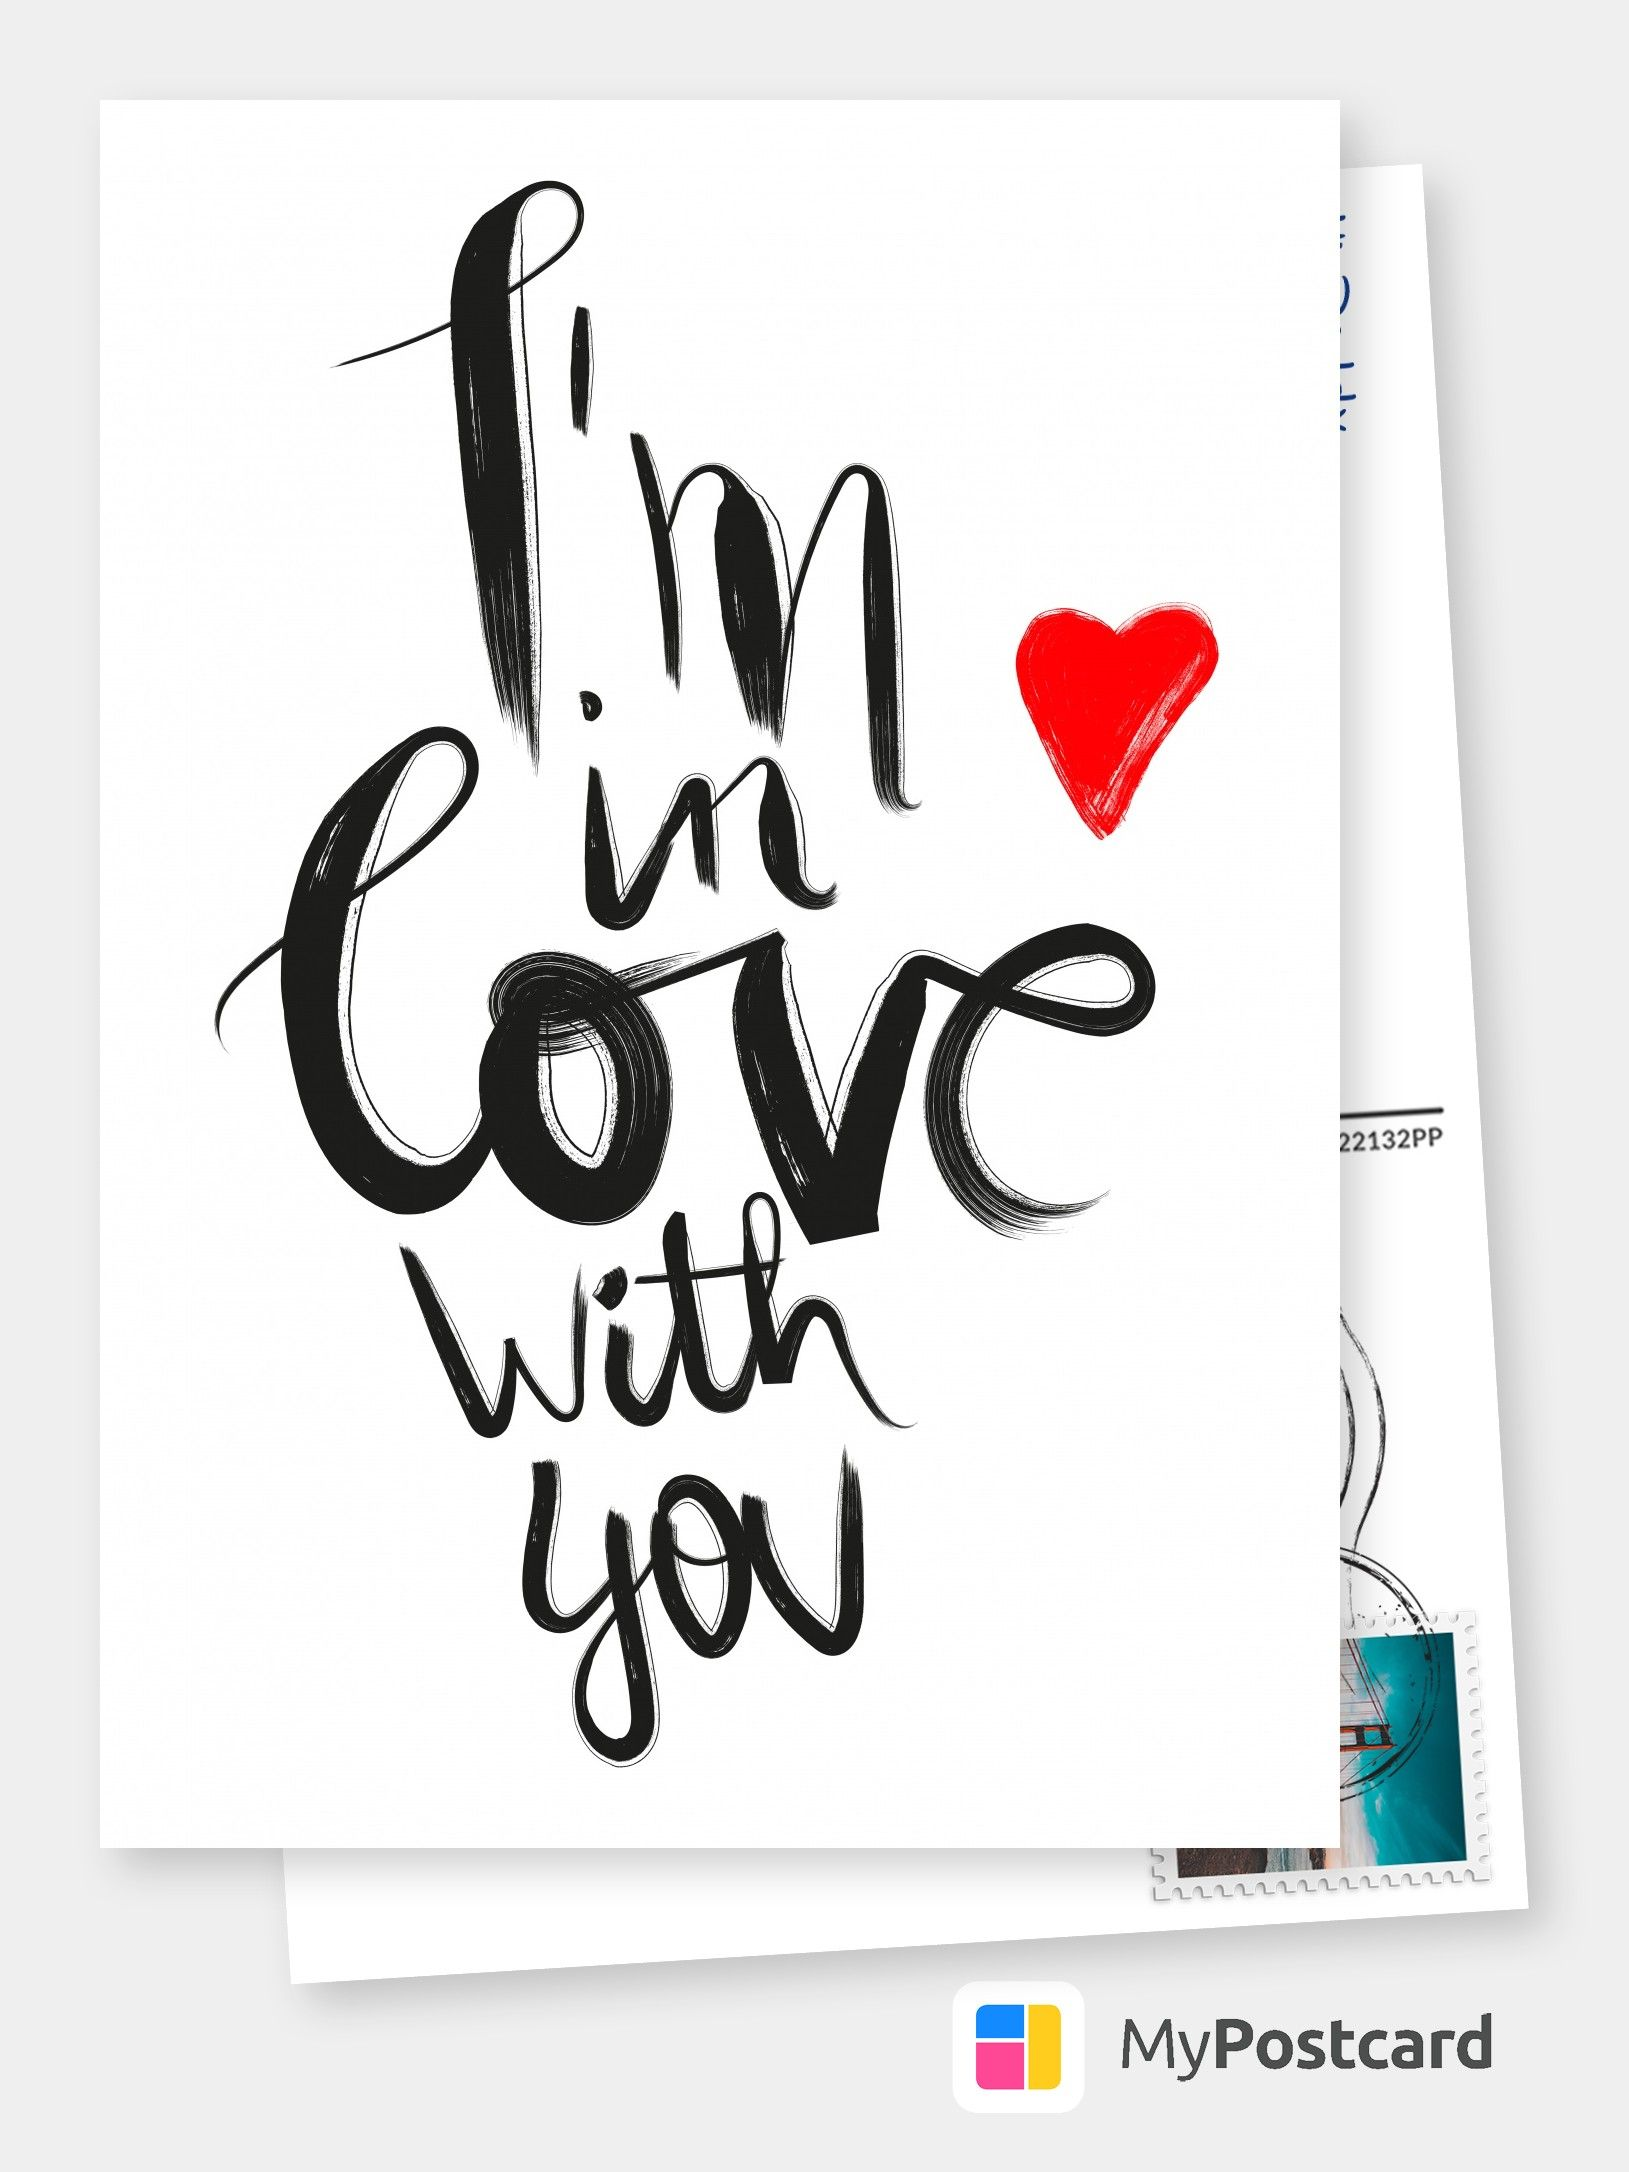 Free International Shipping I Love You Cards Online Printed Mailed For You Customized Personalized Photo Cards Postcards Greeting Cards Liebeskarten Karte Liebe Postkarten